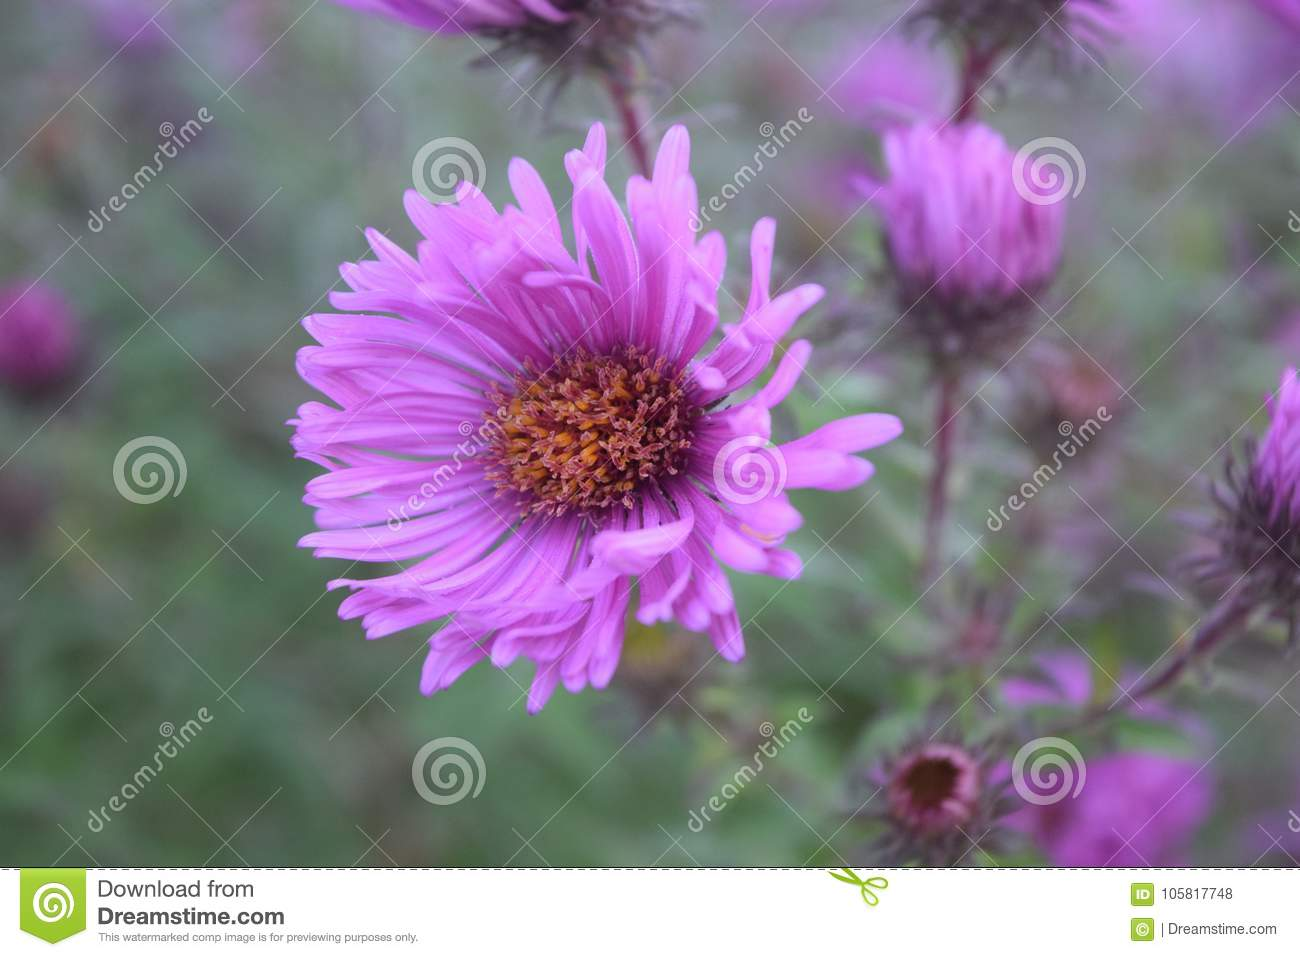 Aster flowers pink asters bloom summer to fall stock photo image download aster flowers pink asters bloom summer to fall stock photo image of park izmirmasajfo